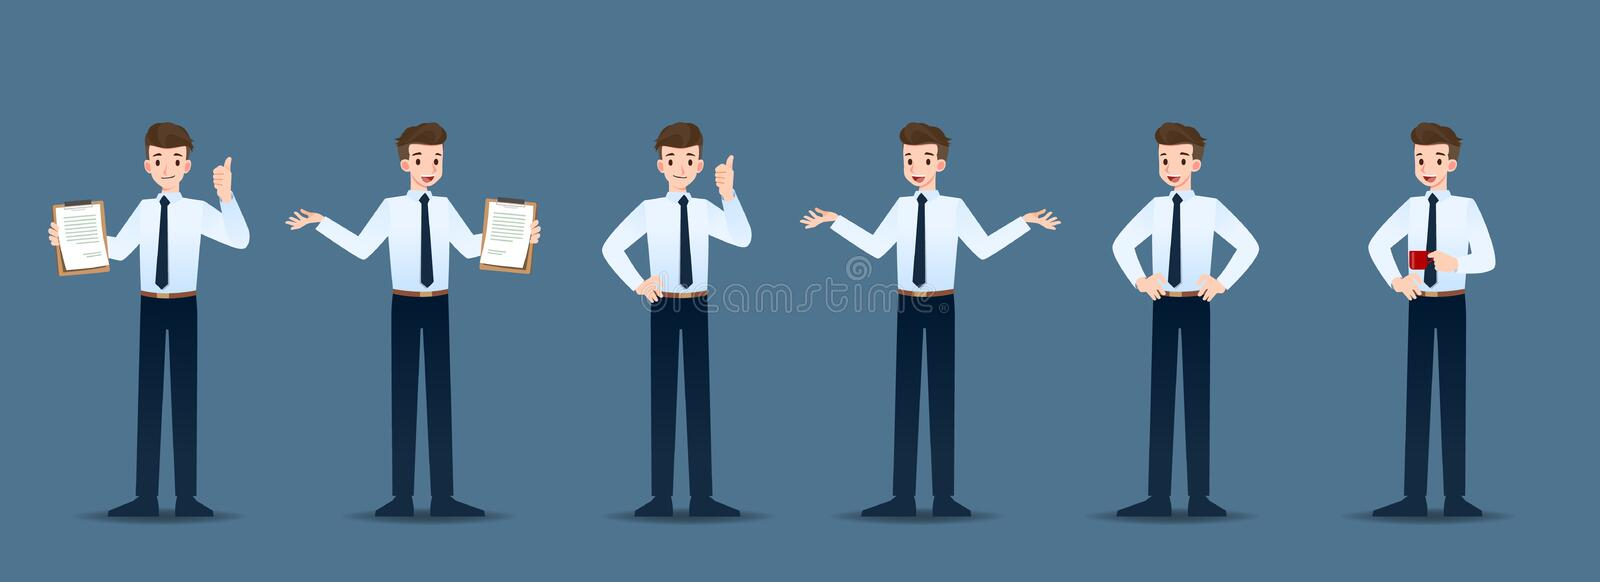 Set of businessman in 6 different gestures. People in business character poses like waiting, communicate and successful. royalty free illustration